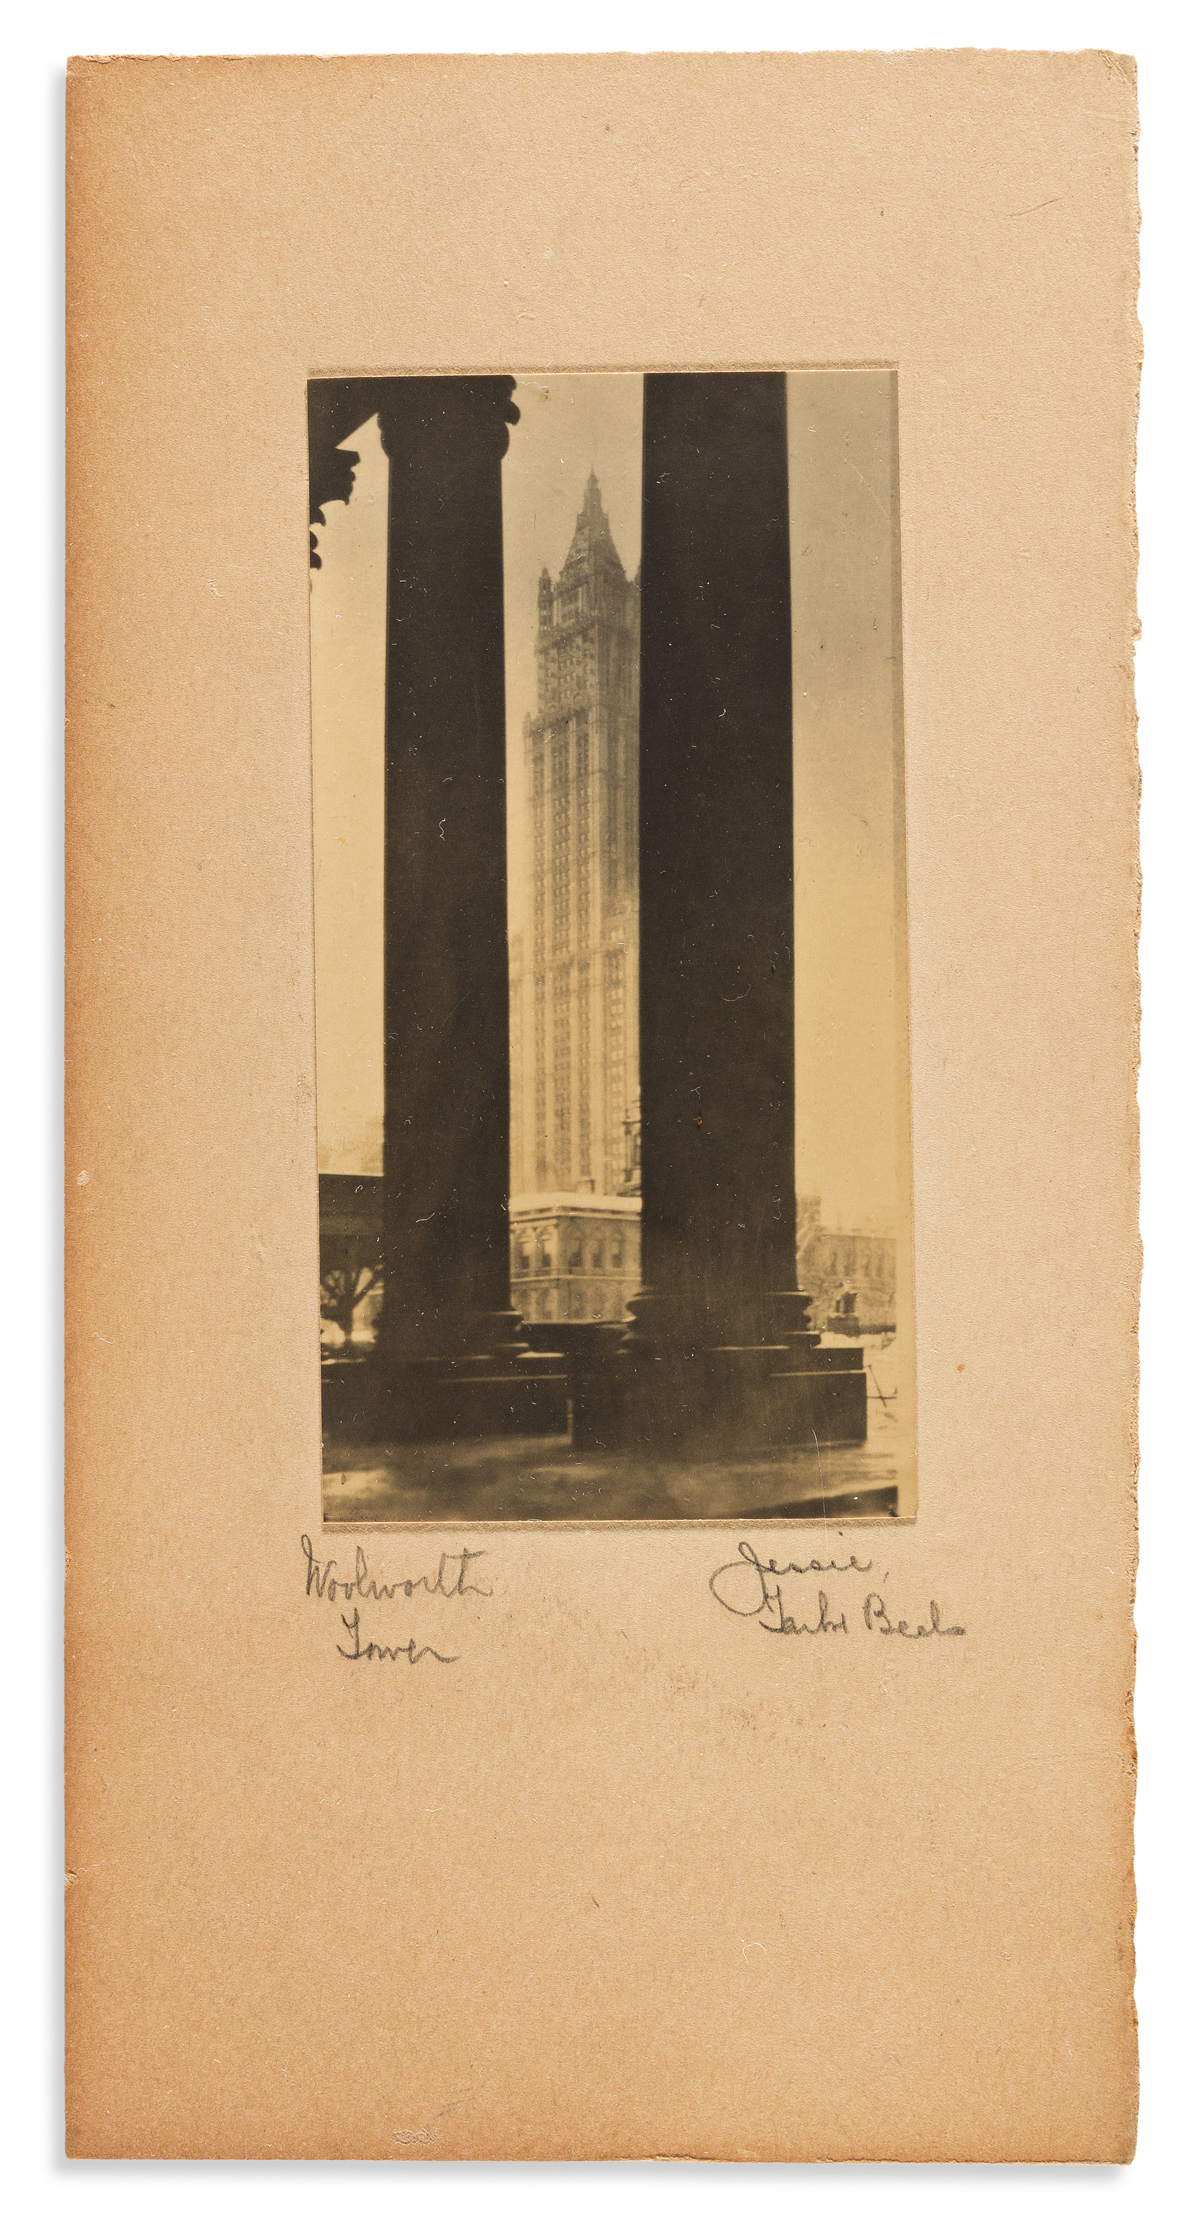 Tarbox Beals, Jessie (1870-1942) Archive of Signed Photographs, circa 1930.